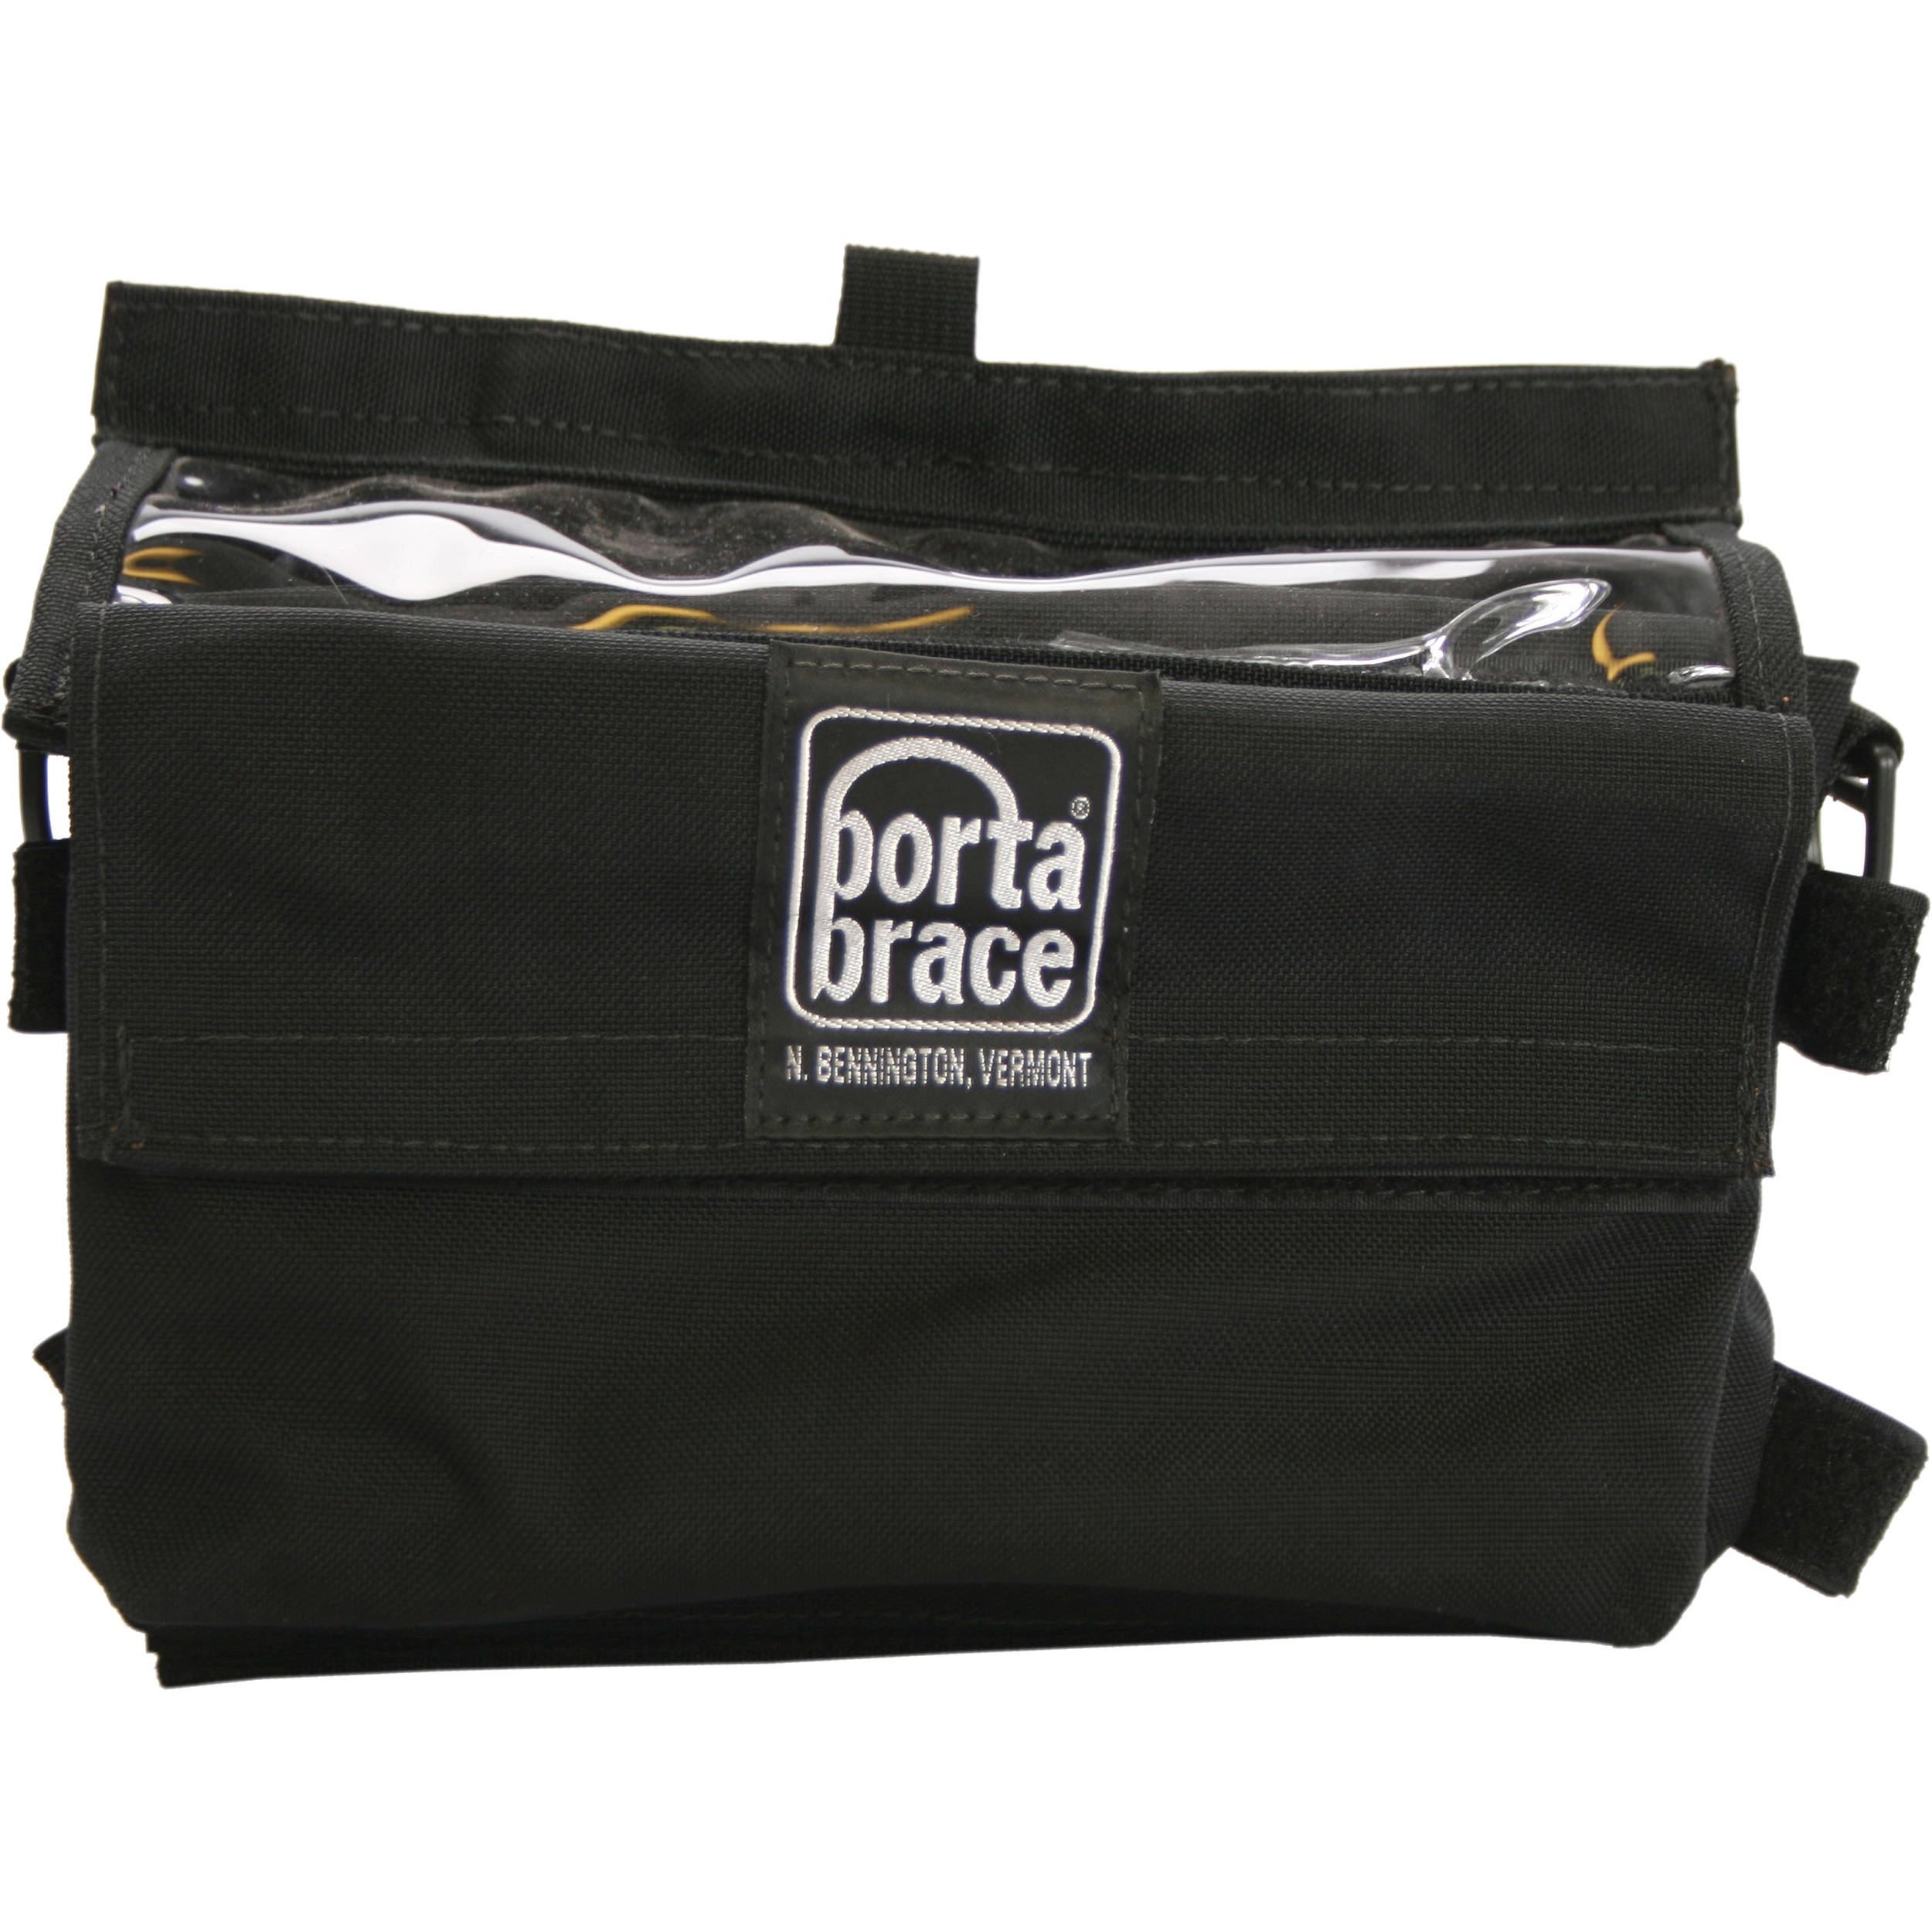 30cd9316ec661 Porta Brace rm multib Extreme Wireless Mic Case 850204.jpg